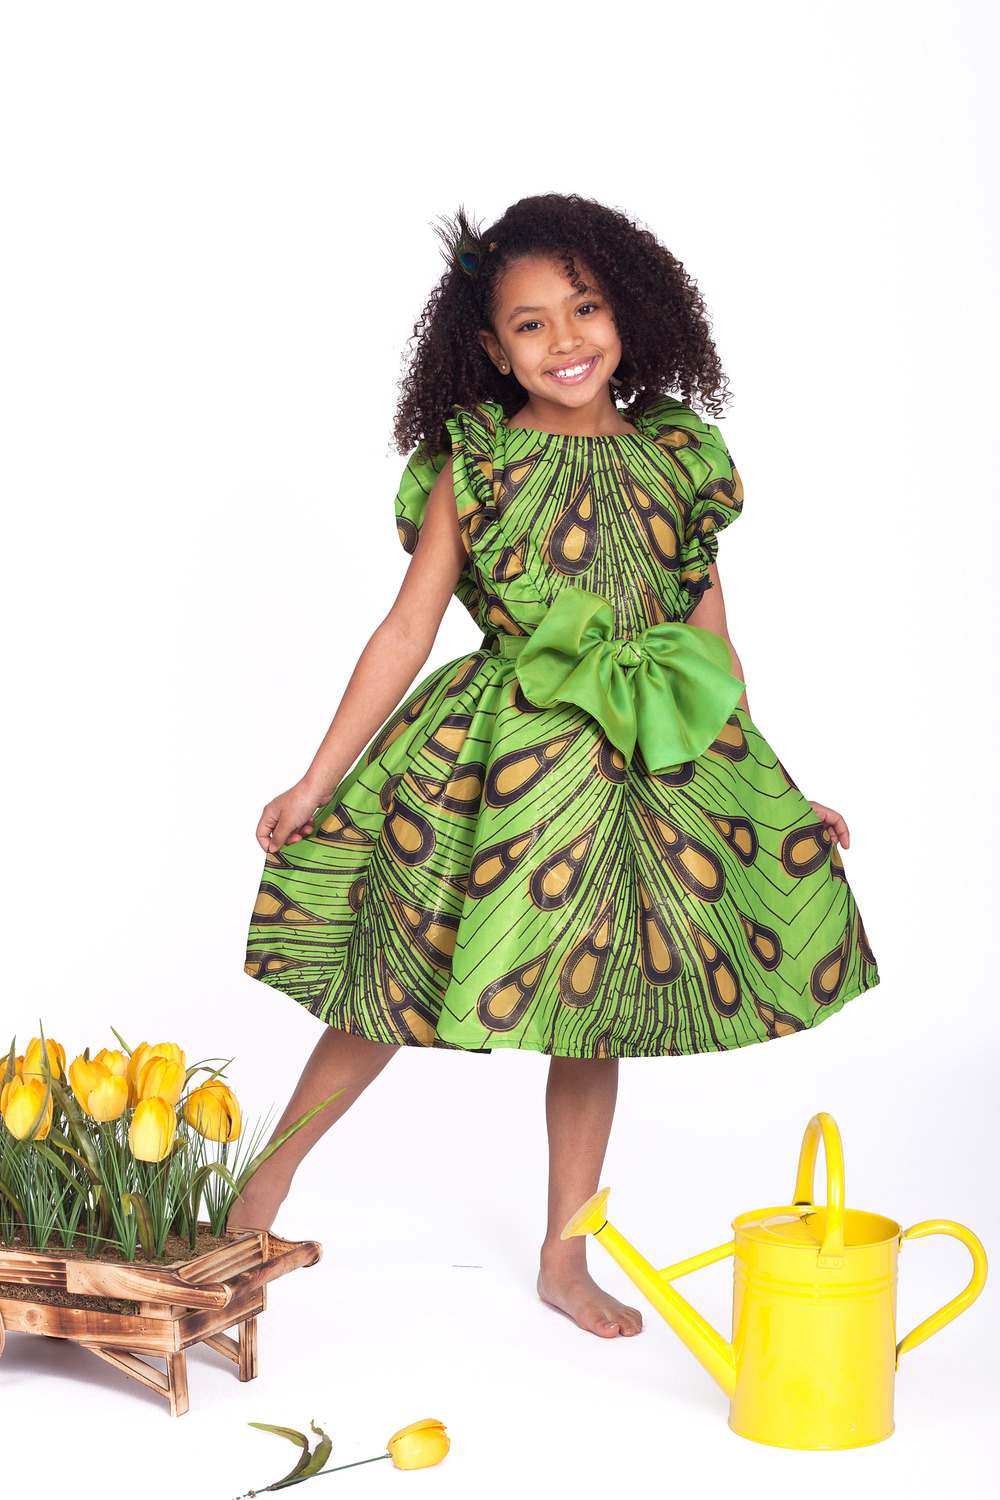 Jollyhers Offers High Quality Kids Clothes and Women Clothing trickytrydown2.tk for Women Clothes or Children Clothing with 30 Days Return Free trickytrydown2.tk Collection and .